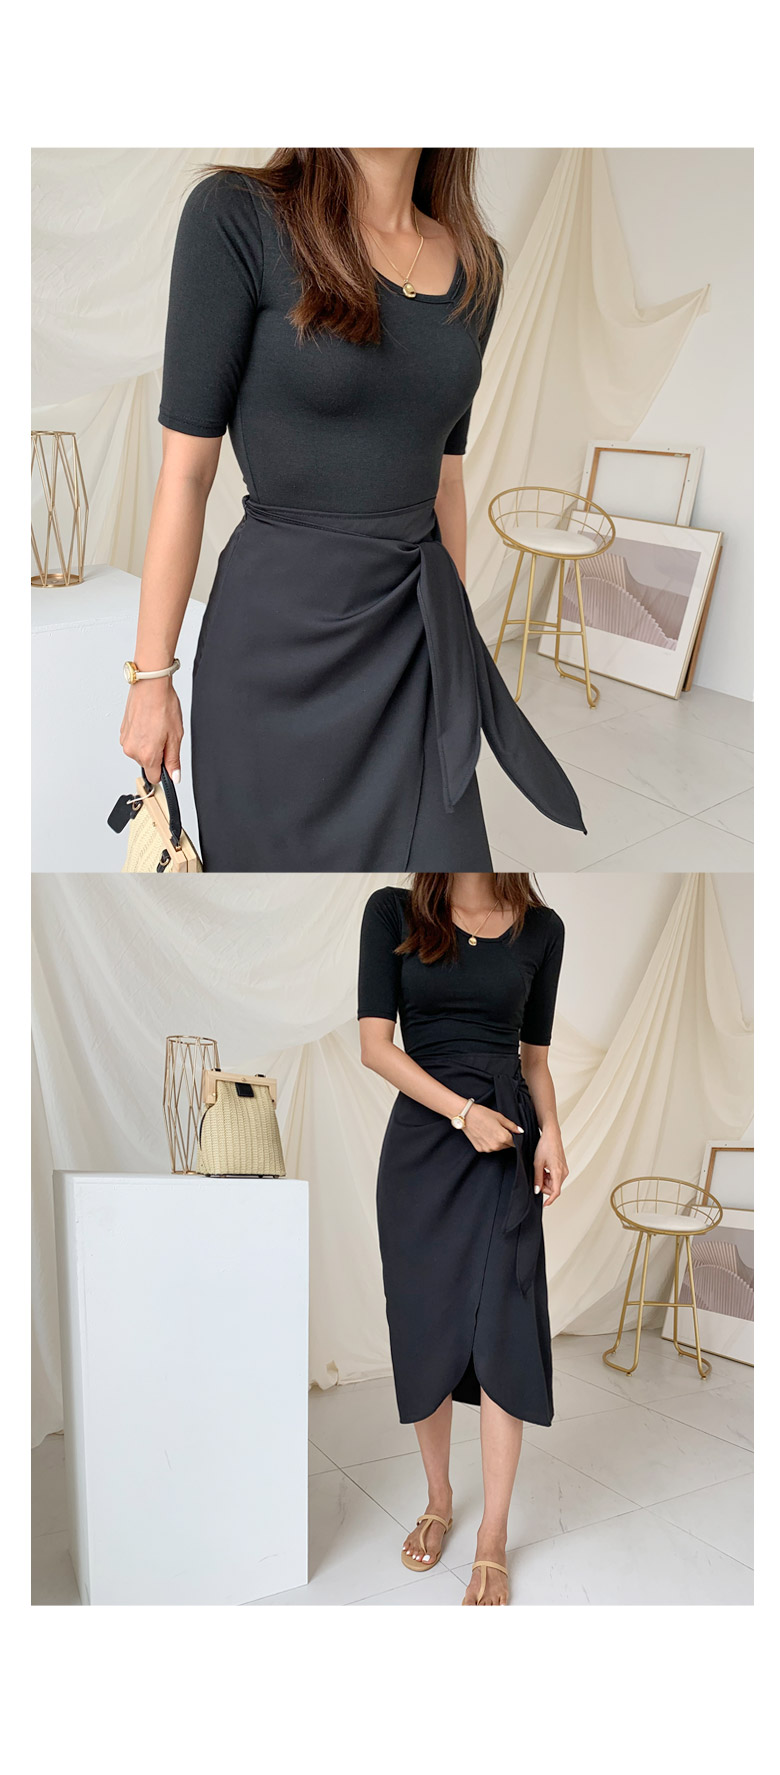 Elice twisted skirt